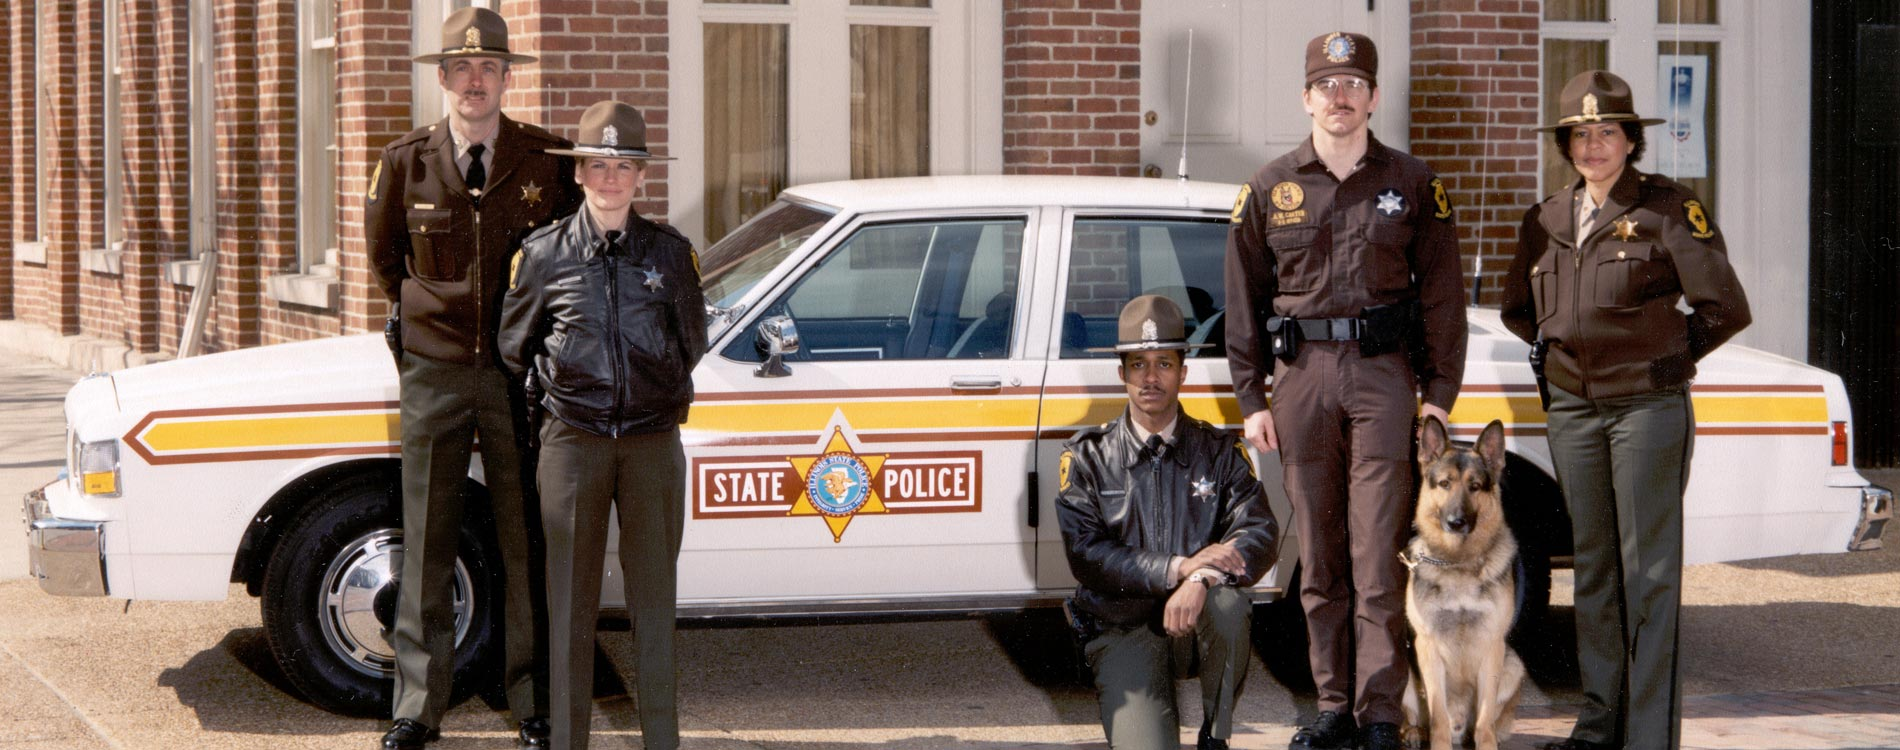 Illinois State Police uniforms and equipment photo gallery: various working uniforms.